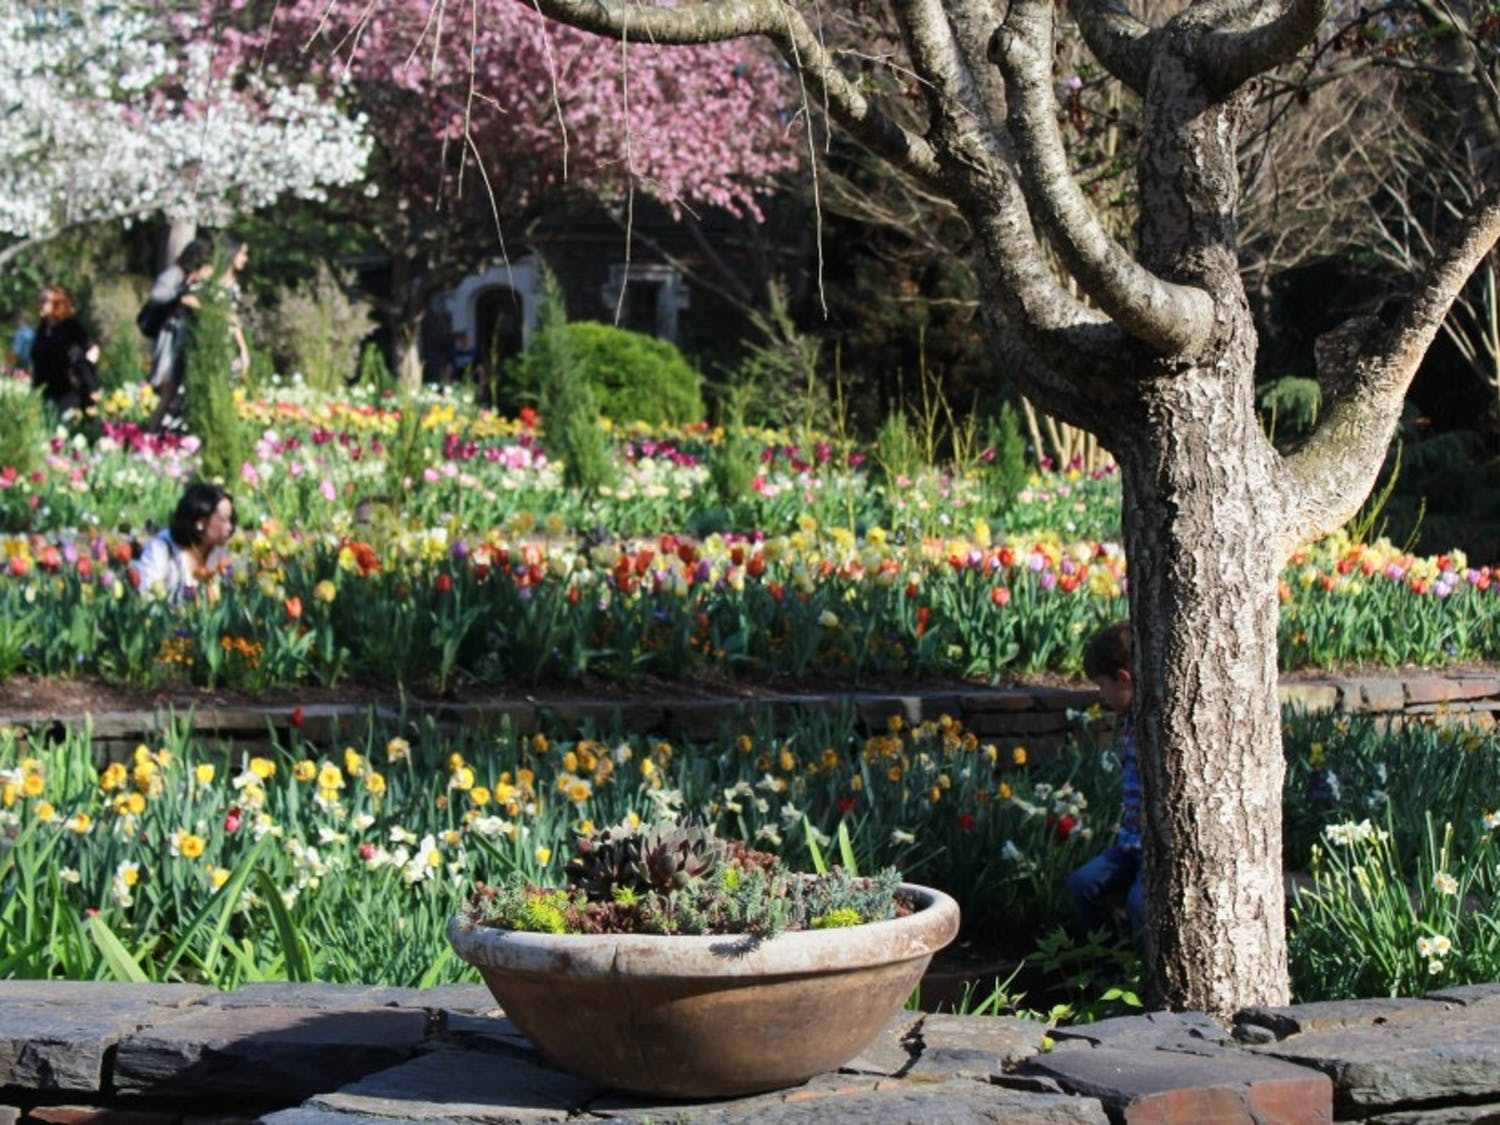 Vibrant blooms transform the Duke gardens into a world of color.